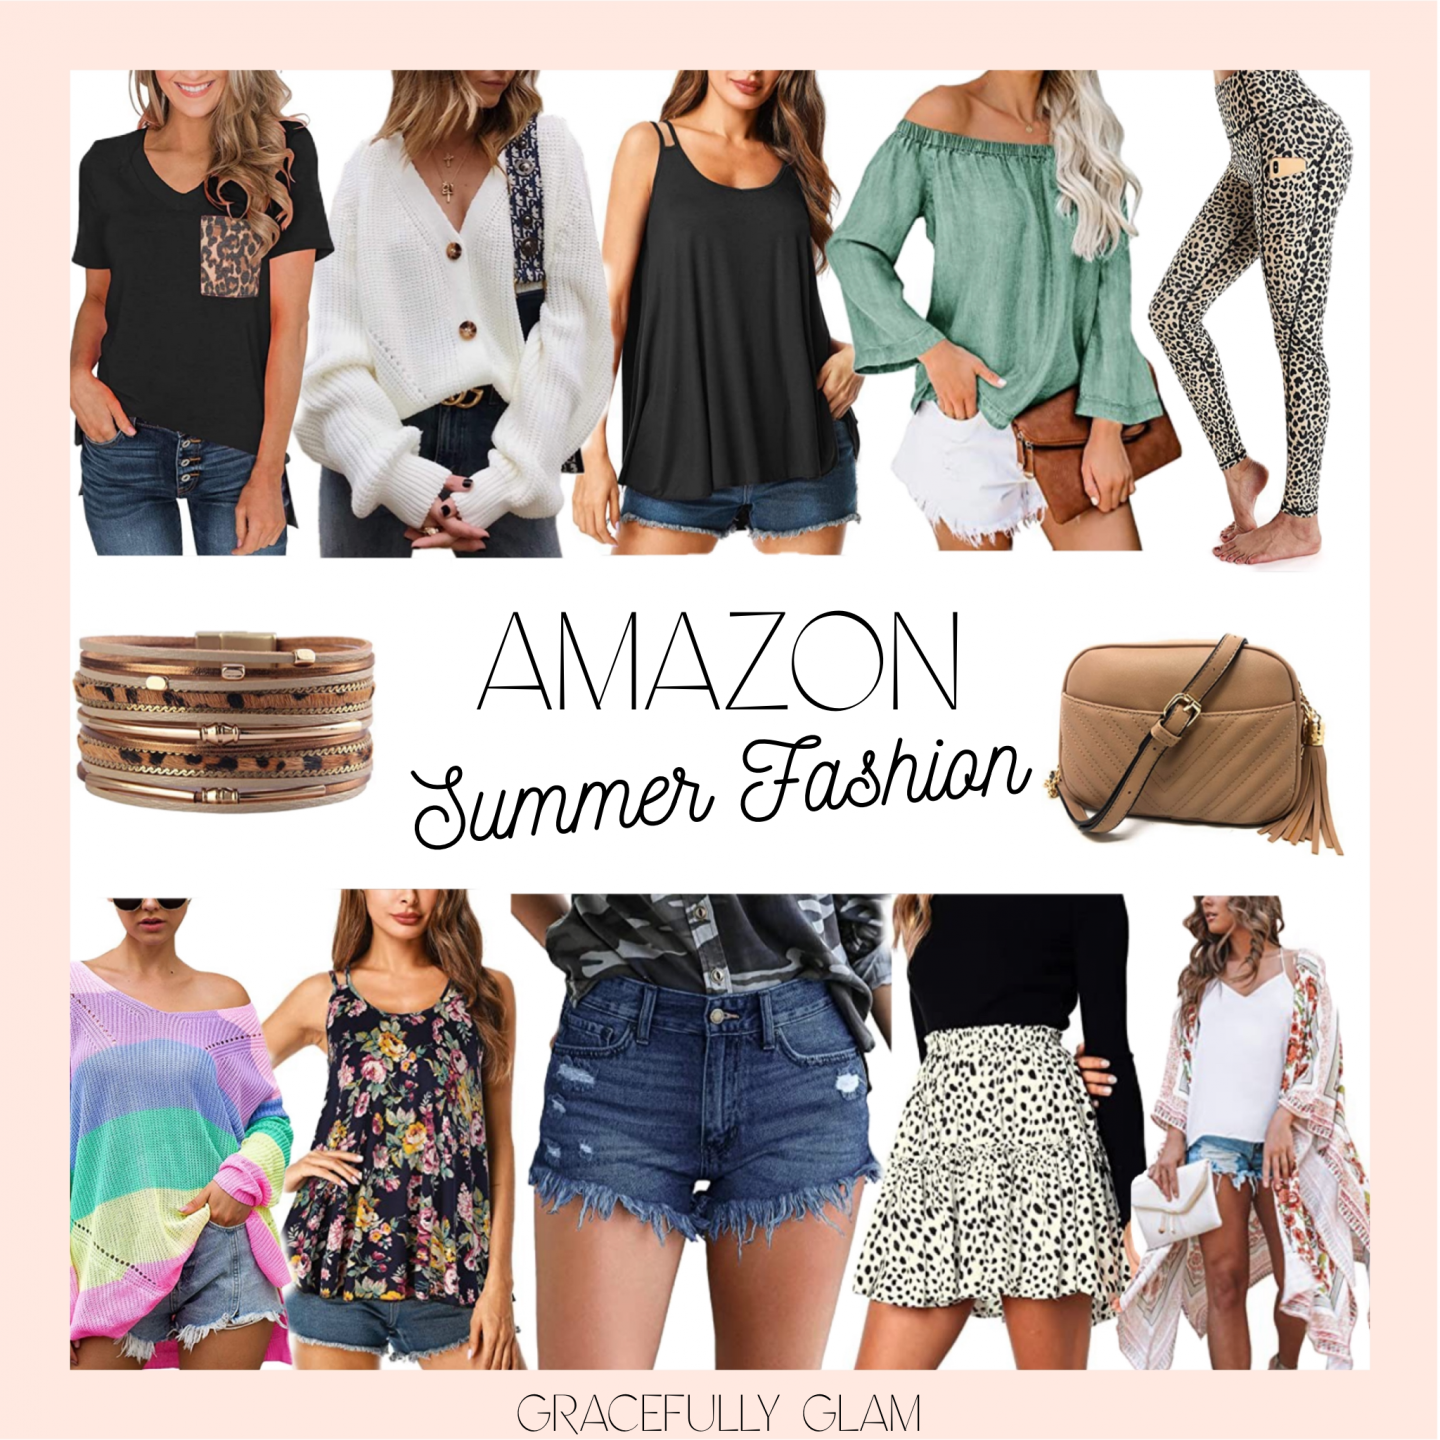 Affordable Summer Fashion From Amazon